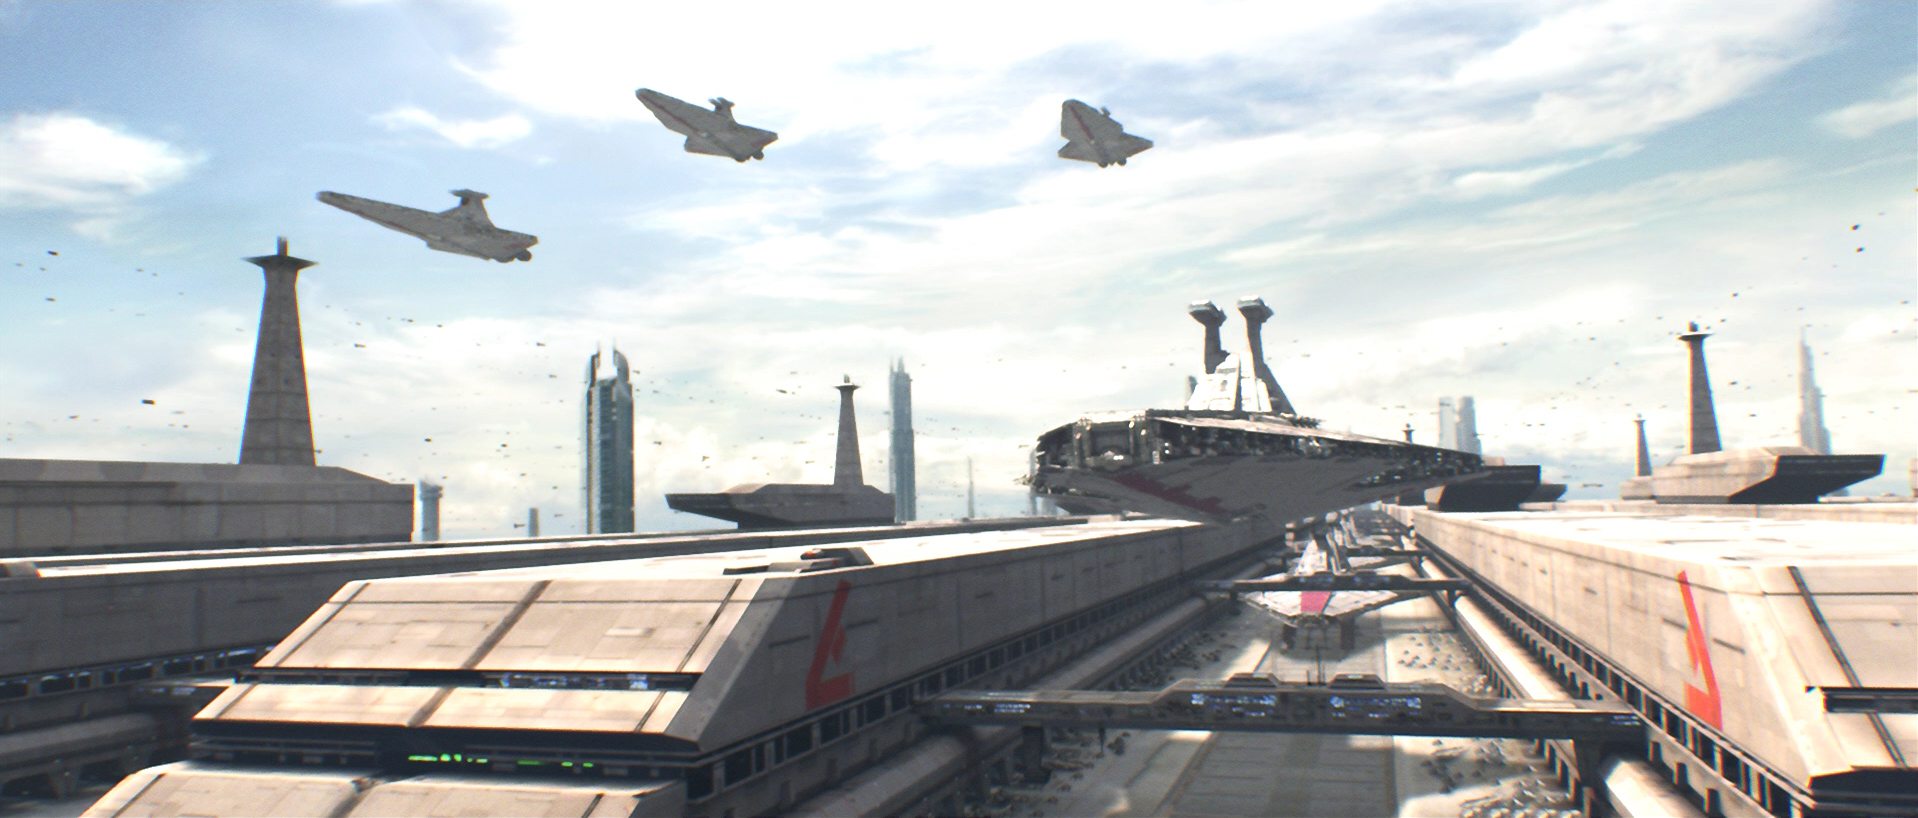 Coruscant cruiser staging area